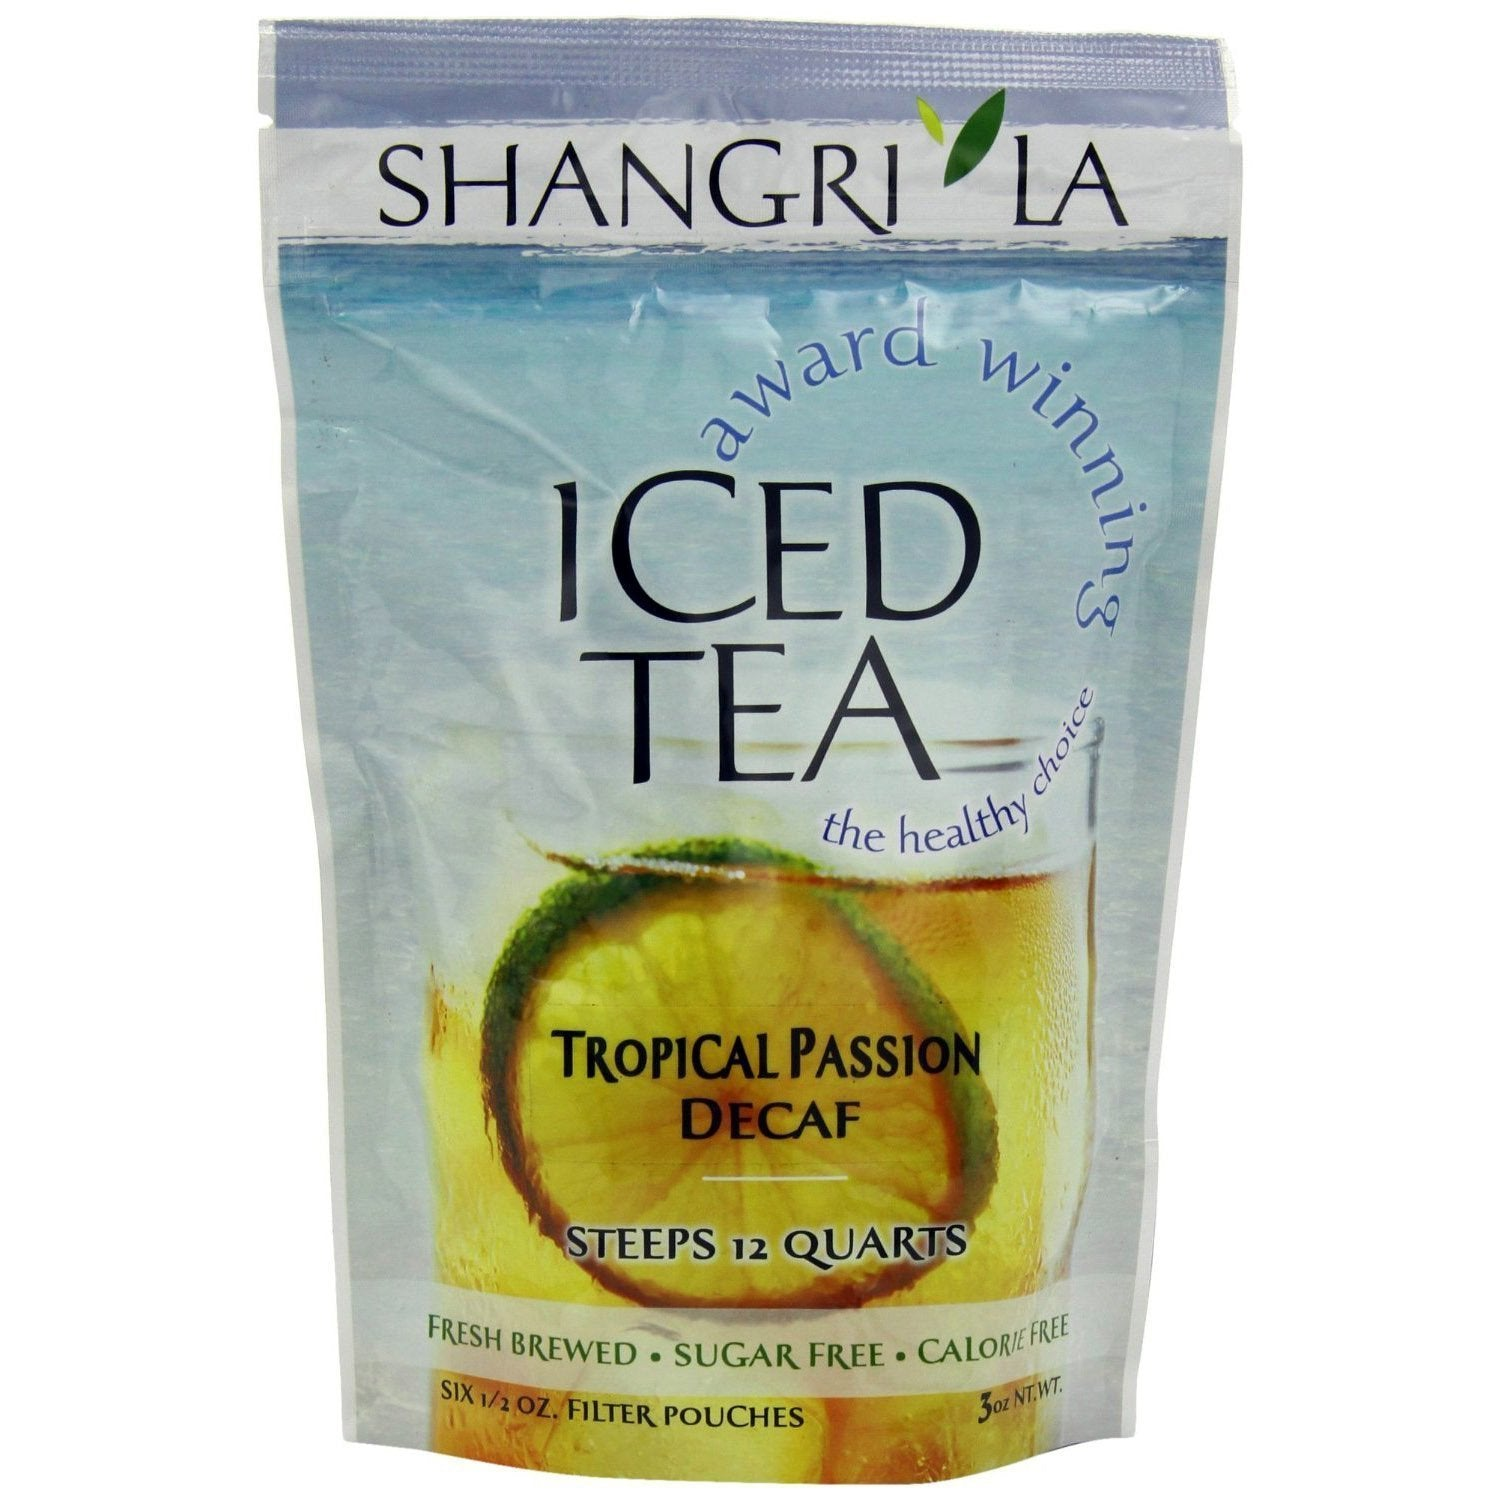 Shangri-La Iced Tea - Tropical Passion Decaf - 0.5oz Filter Pouch - 6ct Bag, 6ct Bag